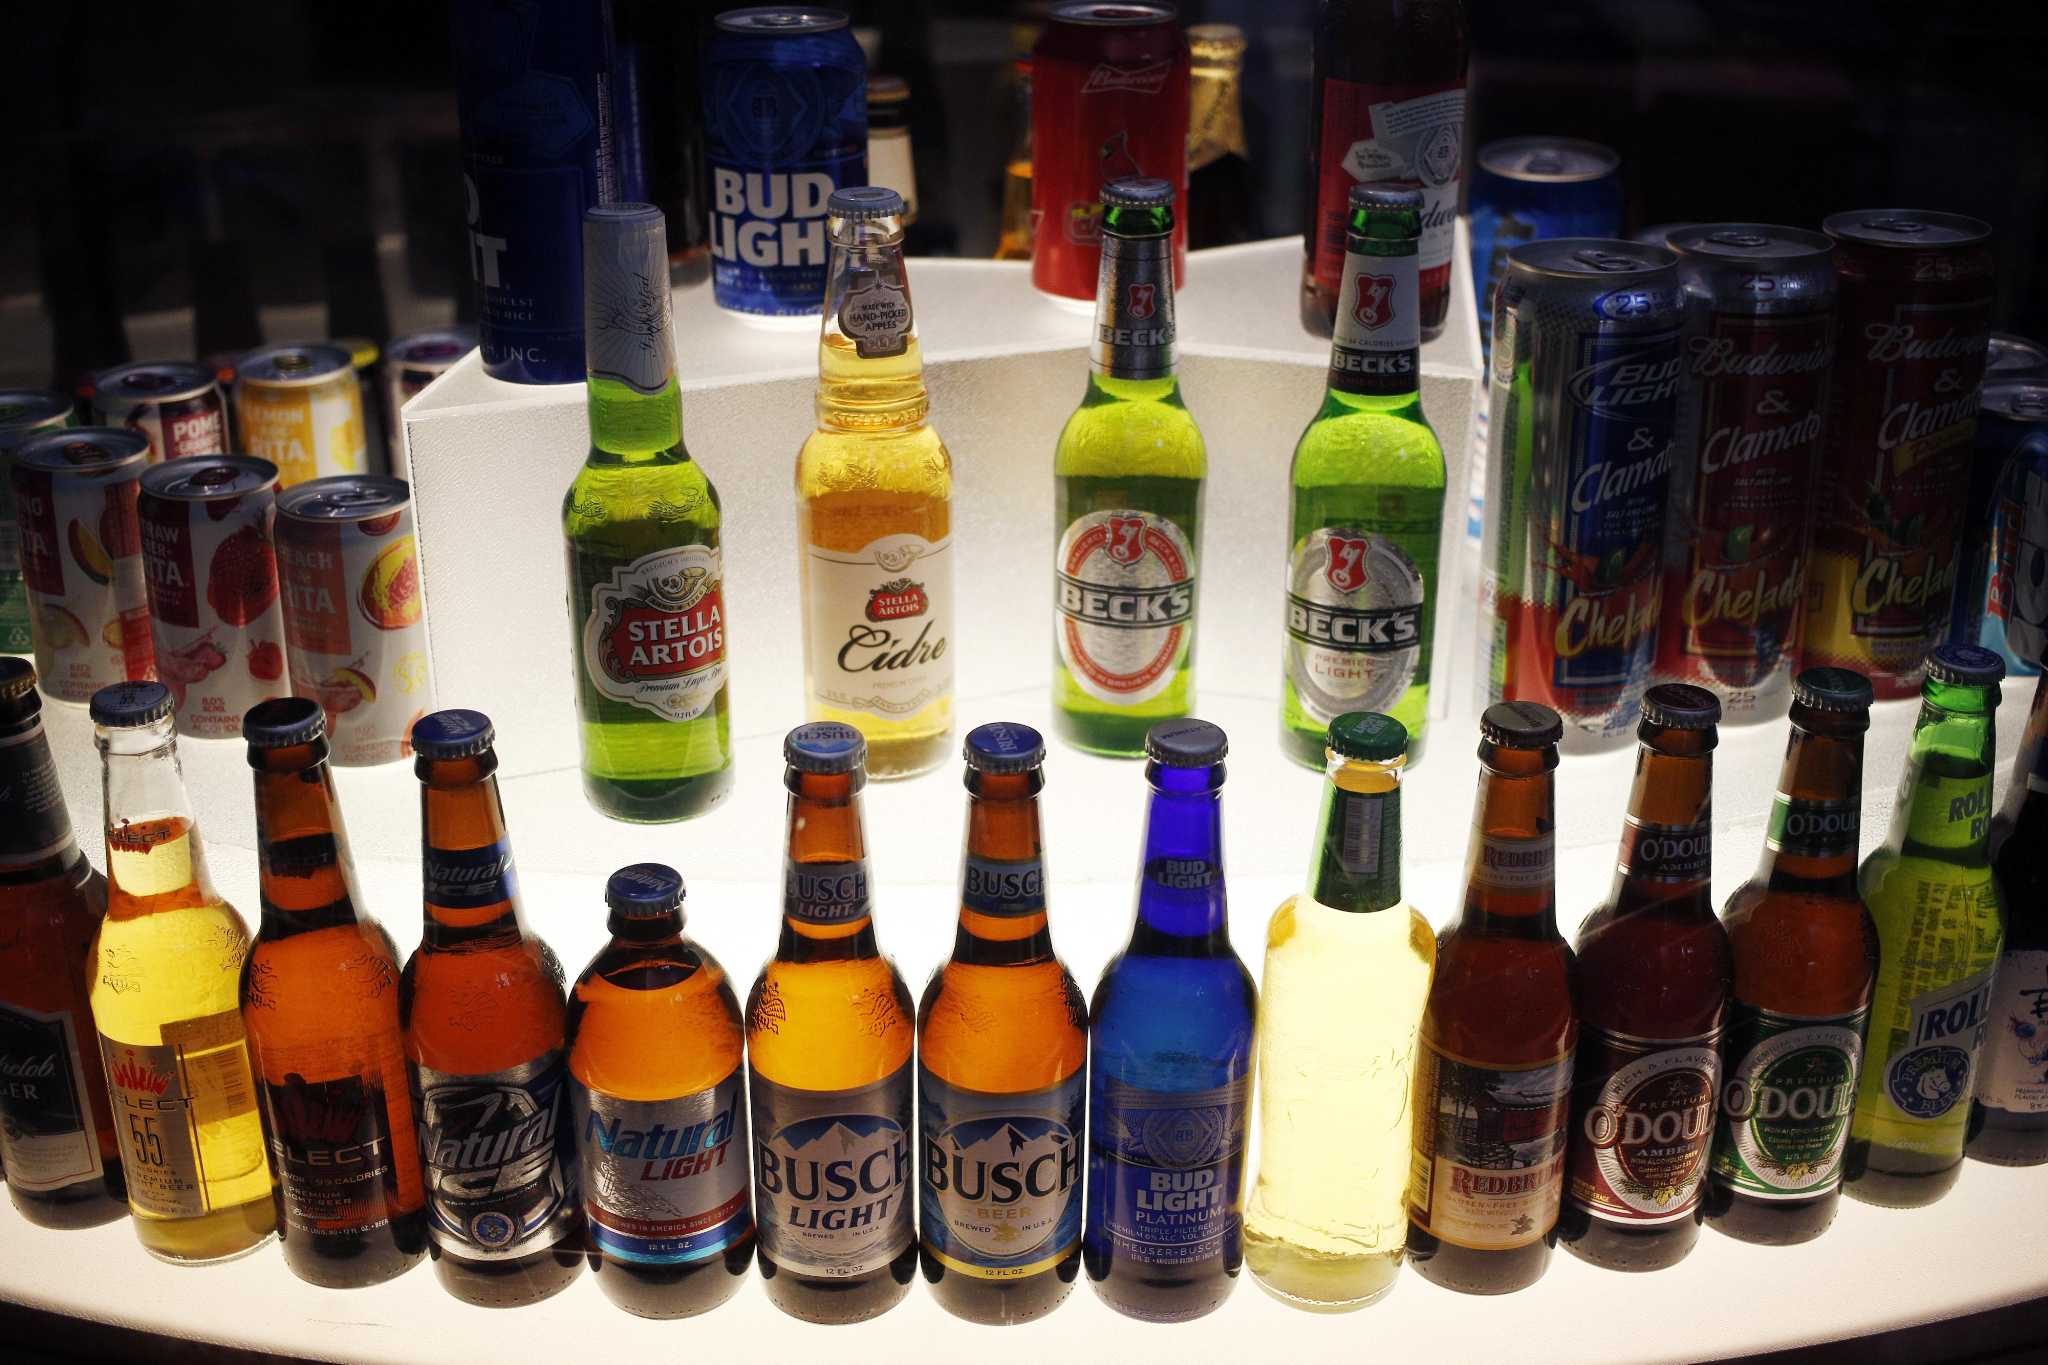 Could craft beer buy out anheuser busch san antonio for Craft beer san antonio